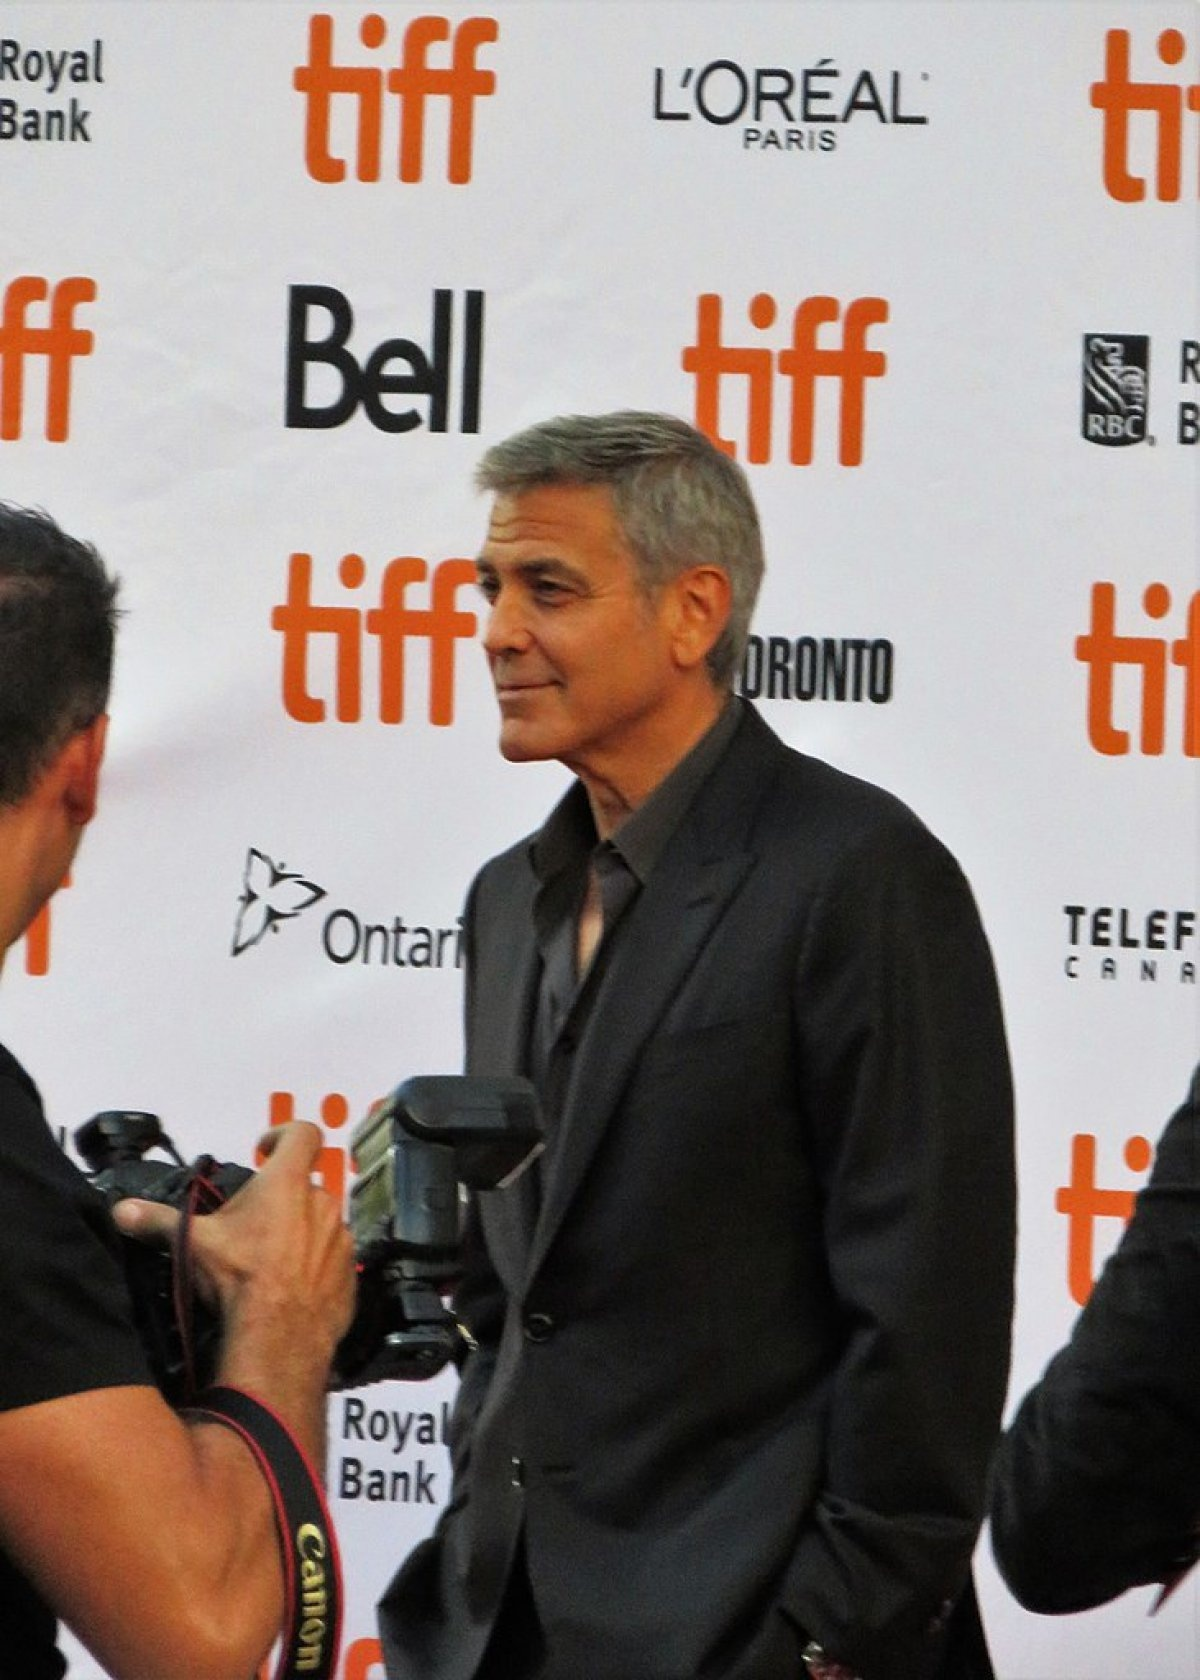 George Clooney named highest-paid actor for 2018, Dwayne